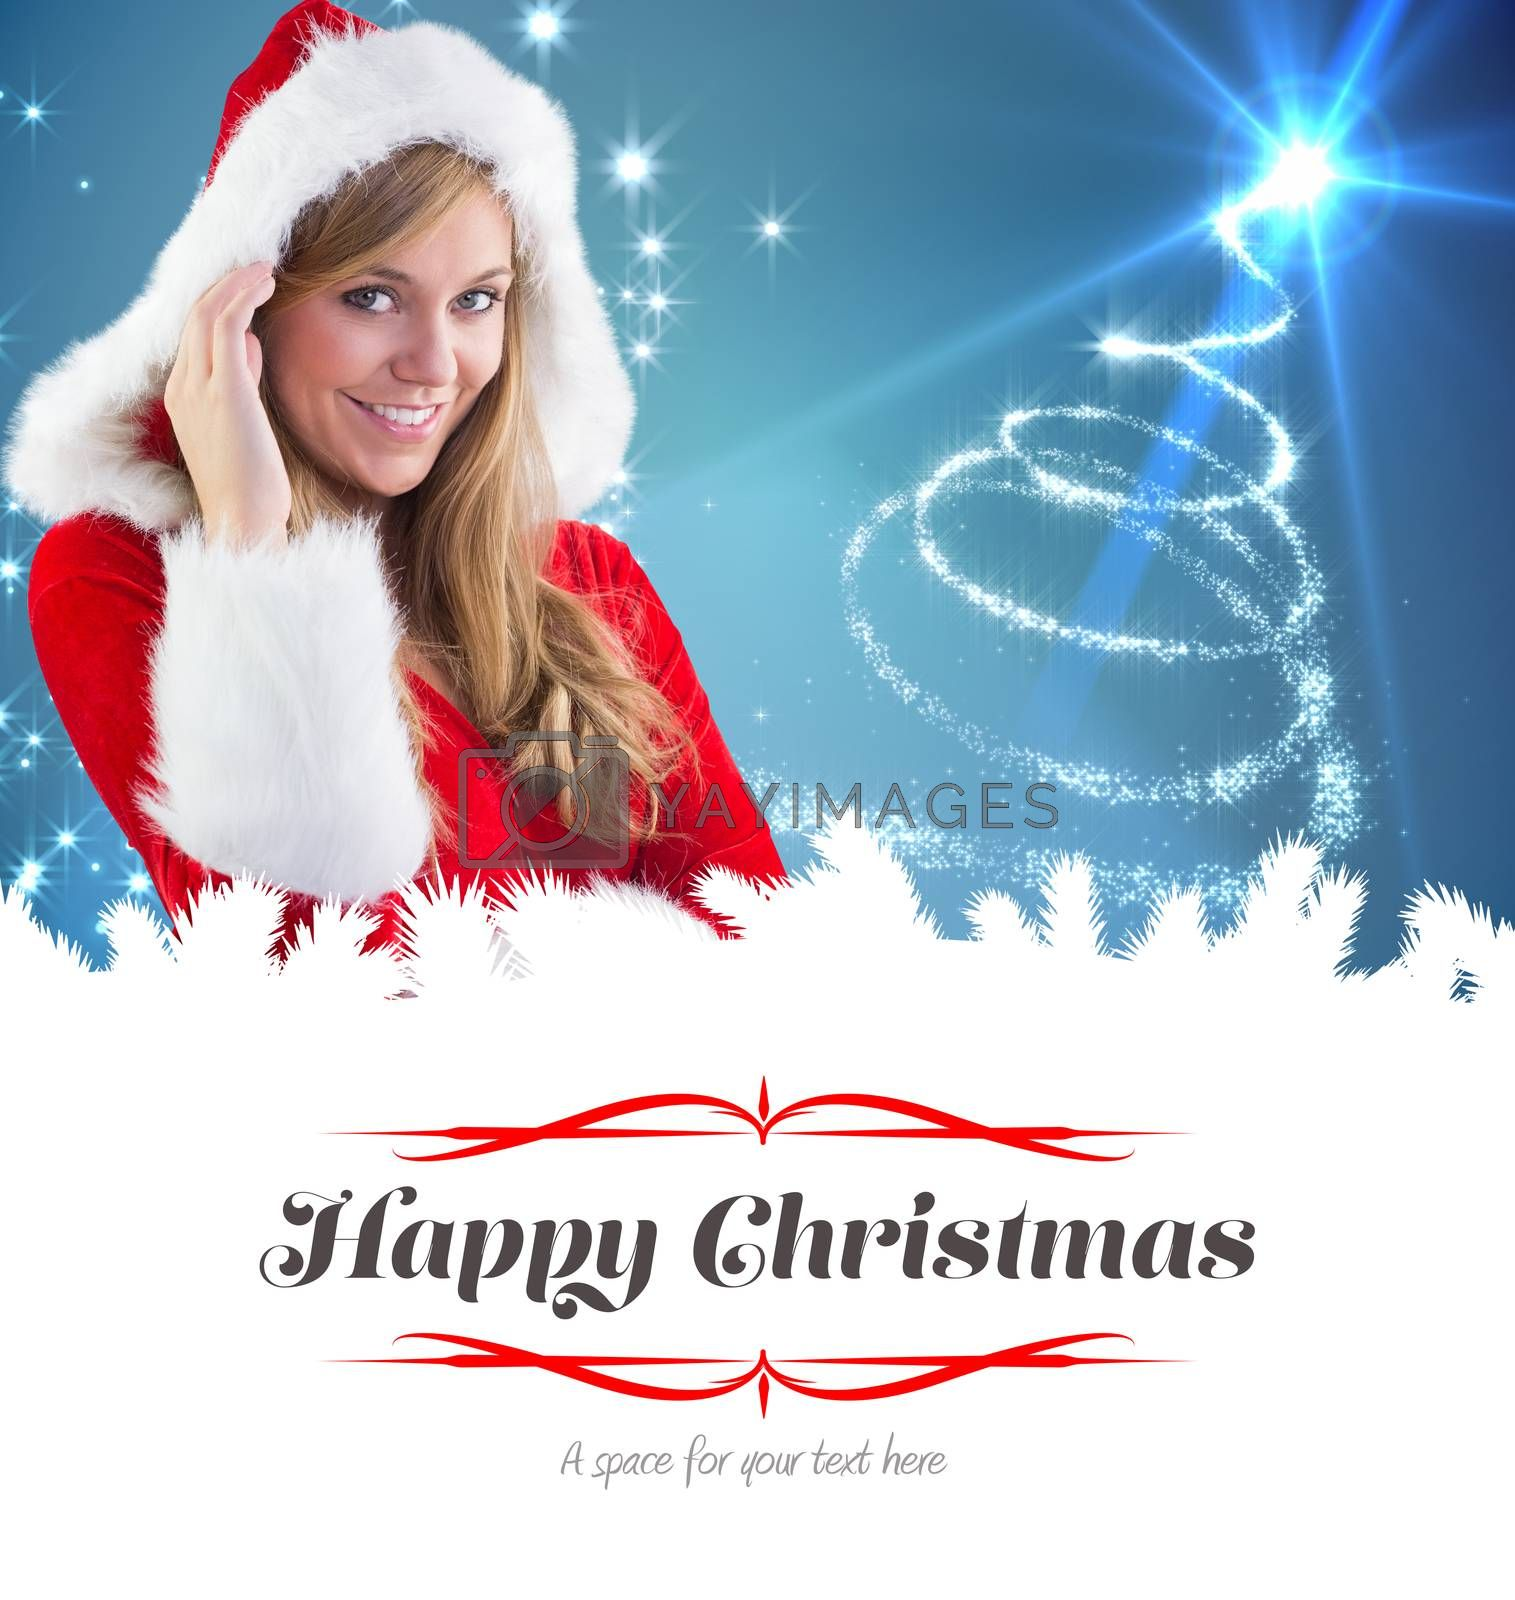 festive blonde smiling at camera against border